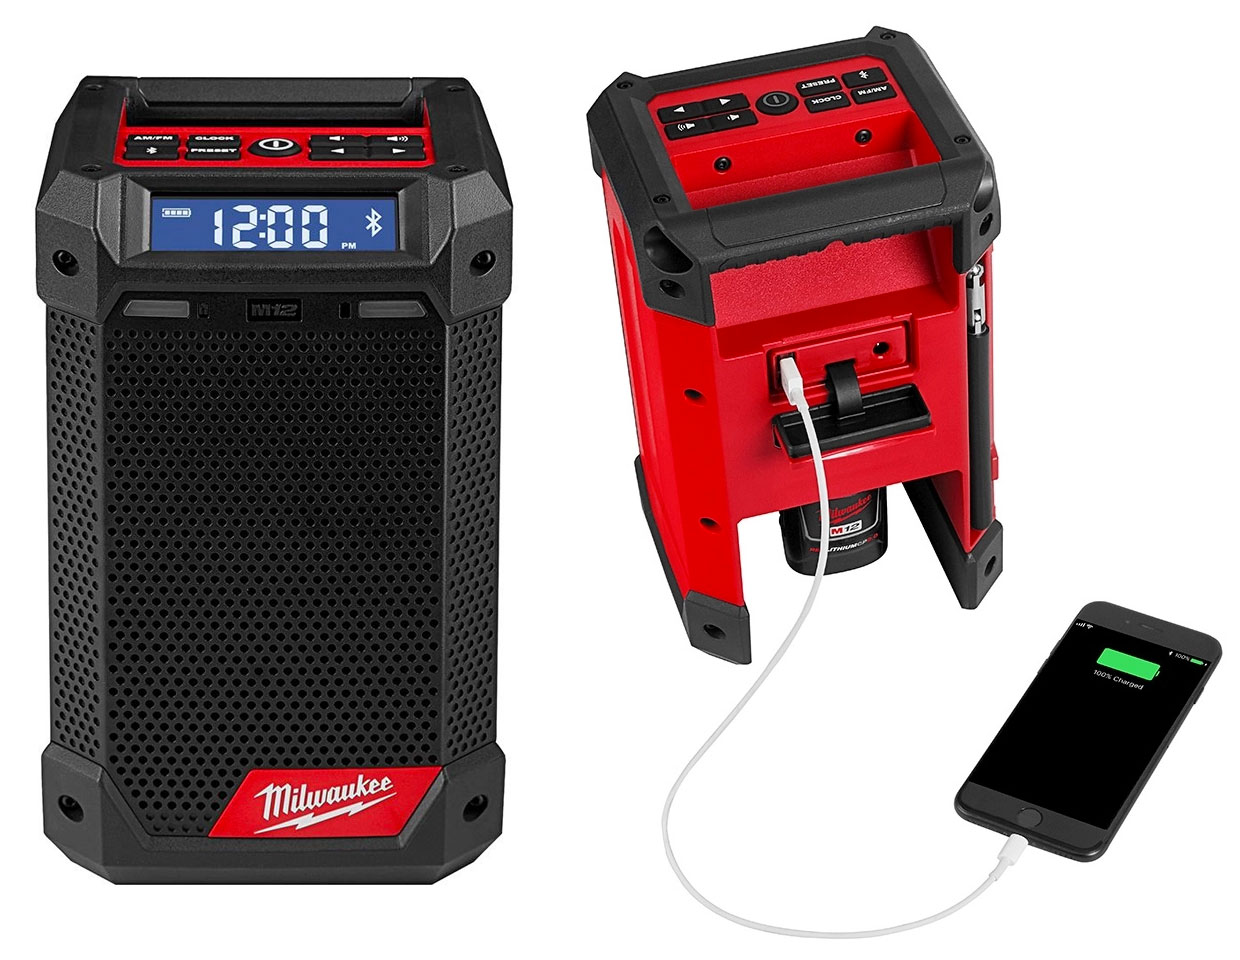 Milwaukee M12 Bluetooth Radio